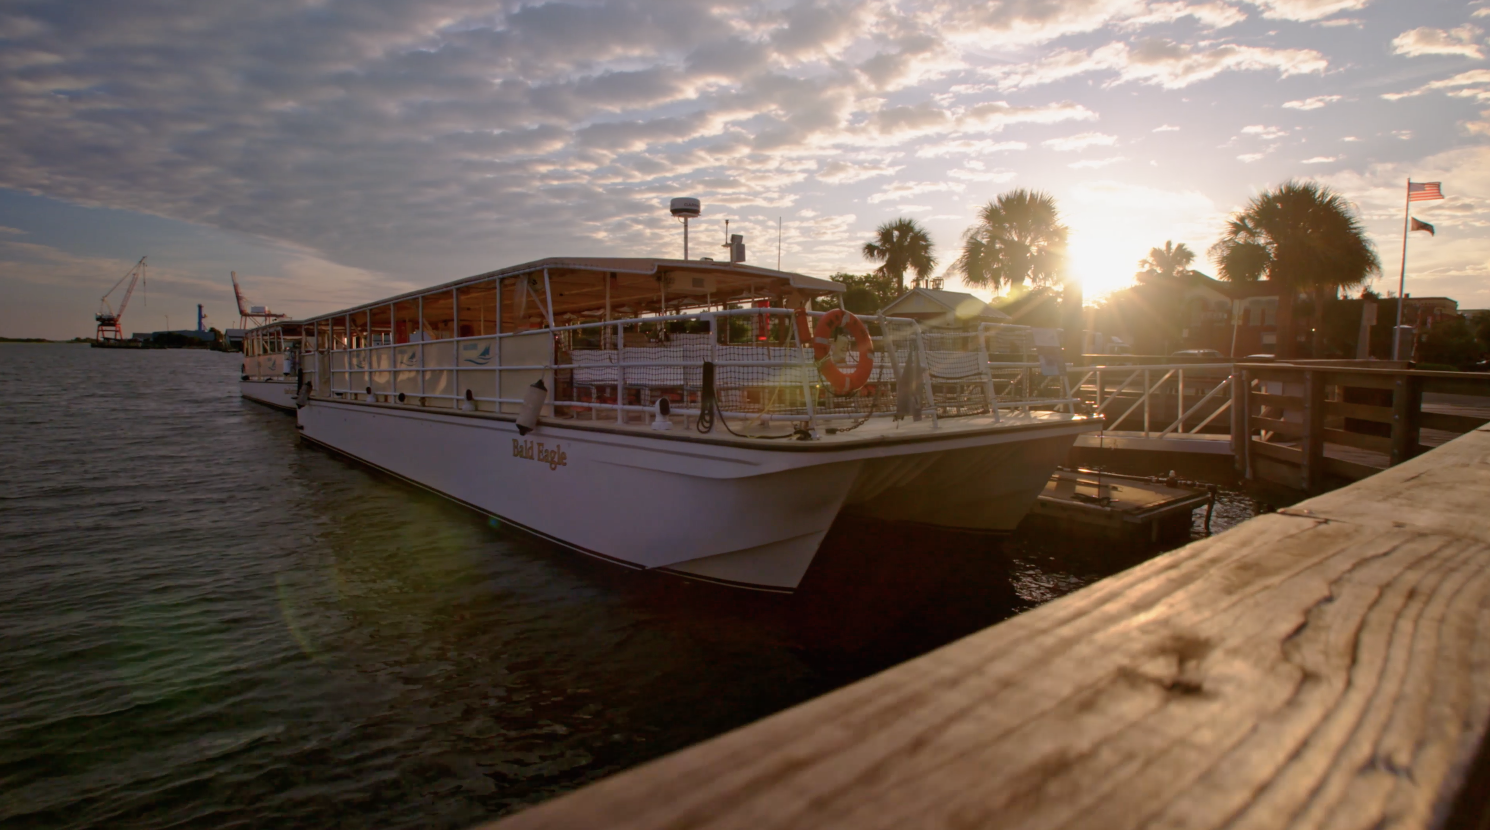 Amelia River Cruises - Kevin and Cecelia McCarthy created Amelia River Cruises & Charters to share their seafaring heritage.View in Directory